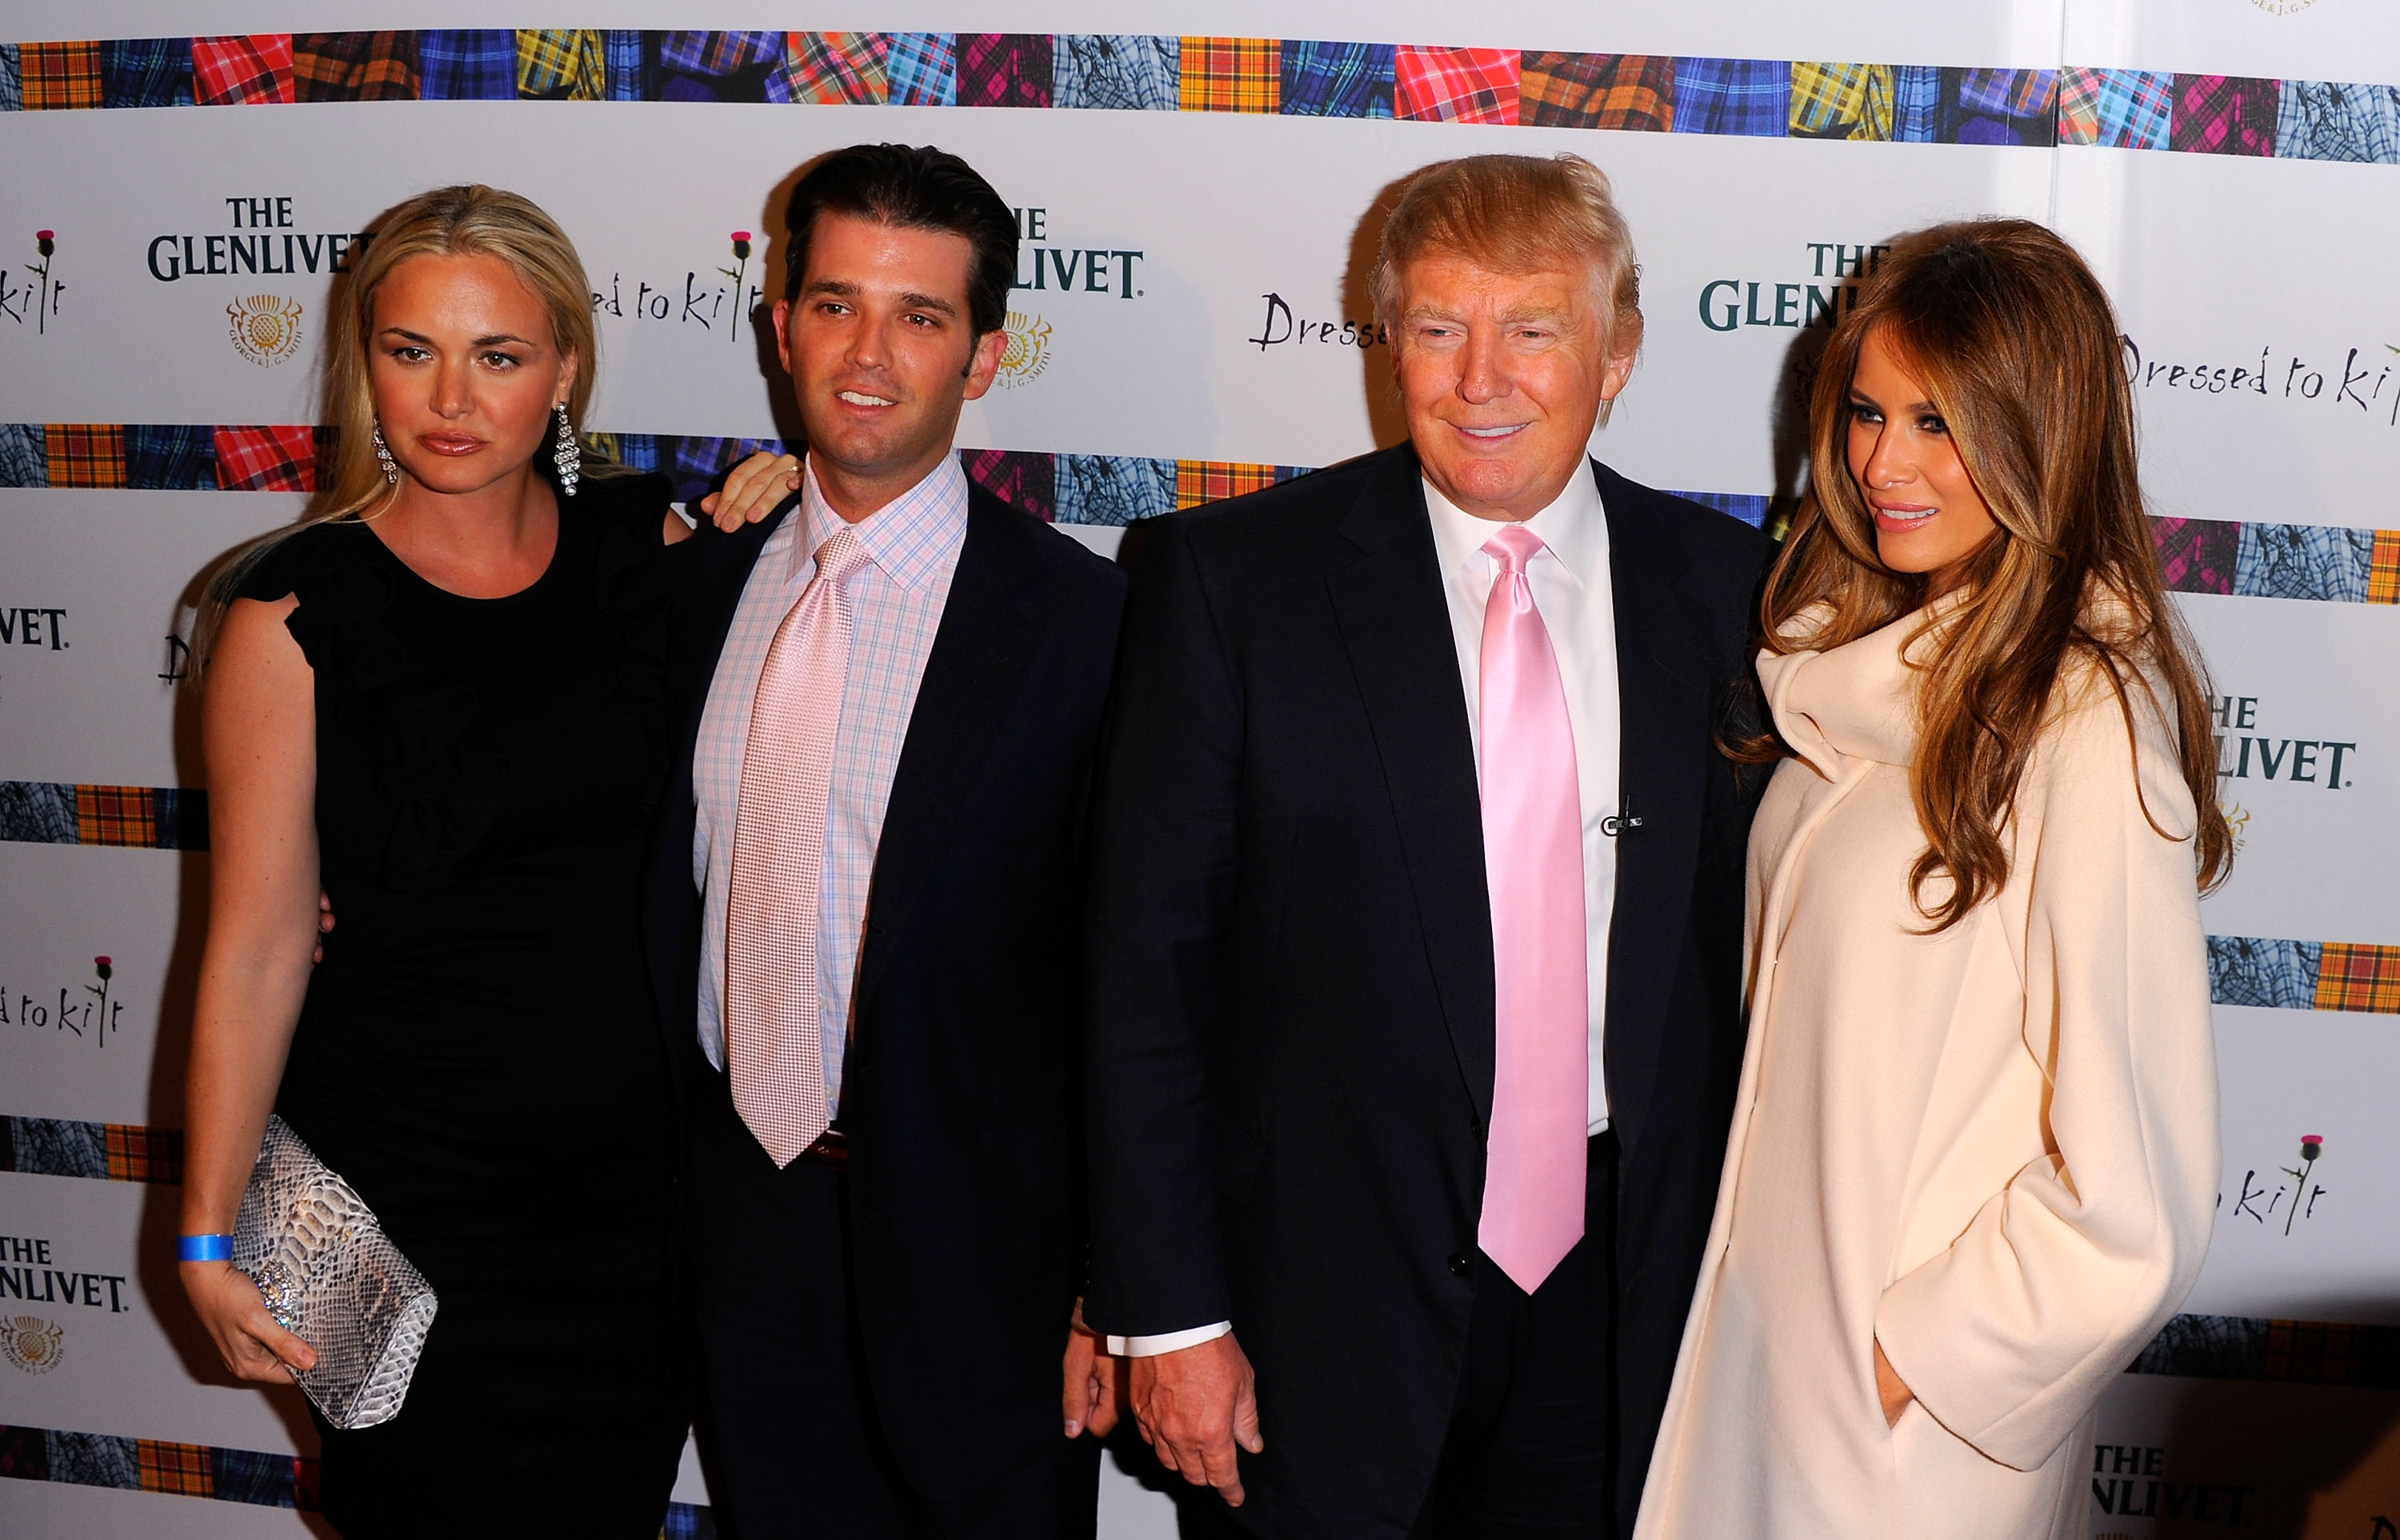 Did Donald Trump Jr. Have a Affair with Aubrey O'Day?